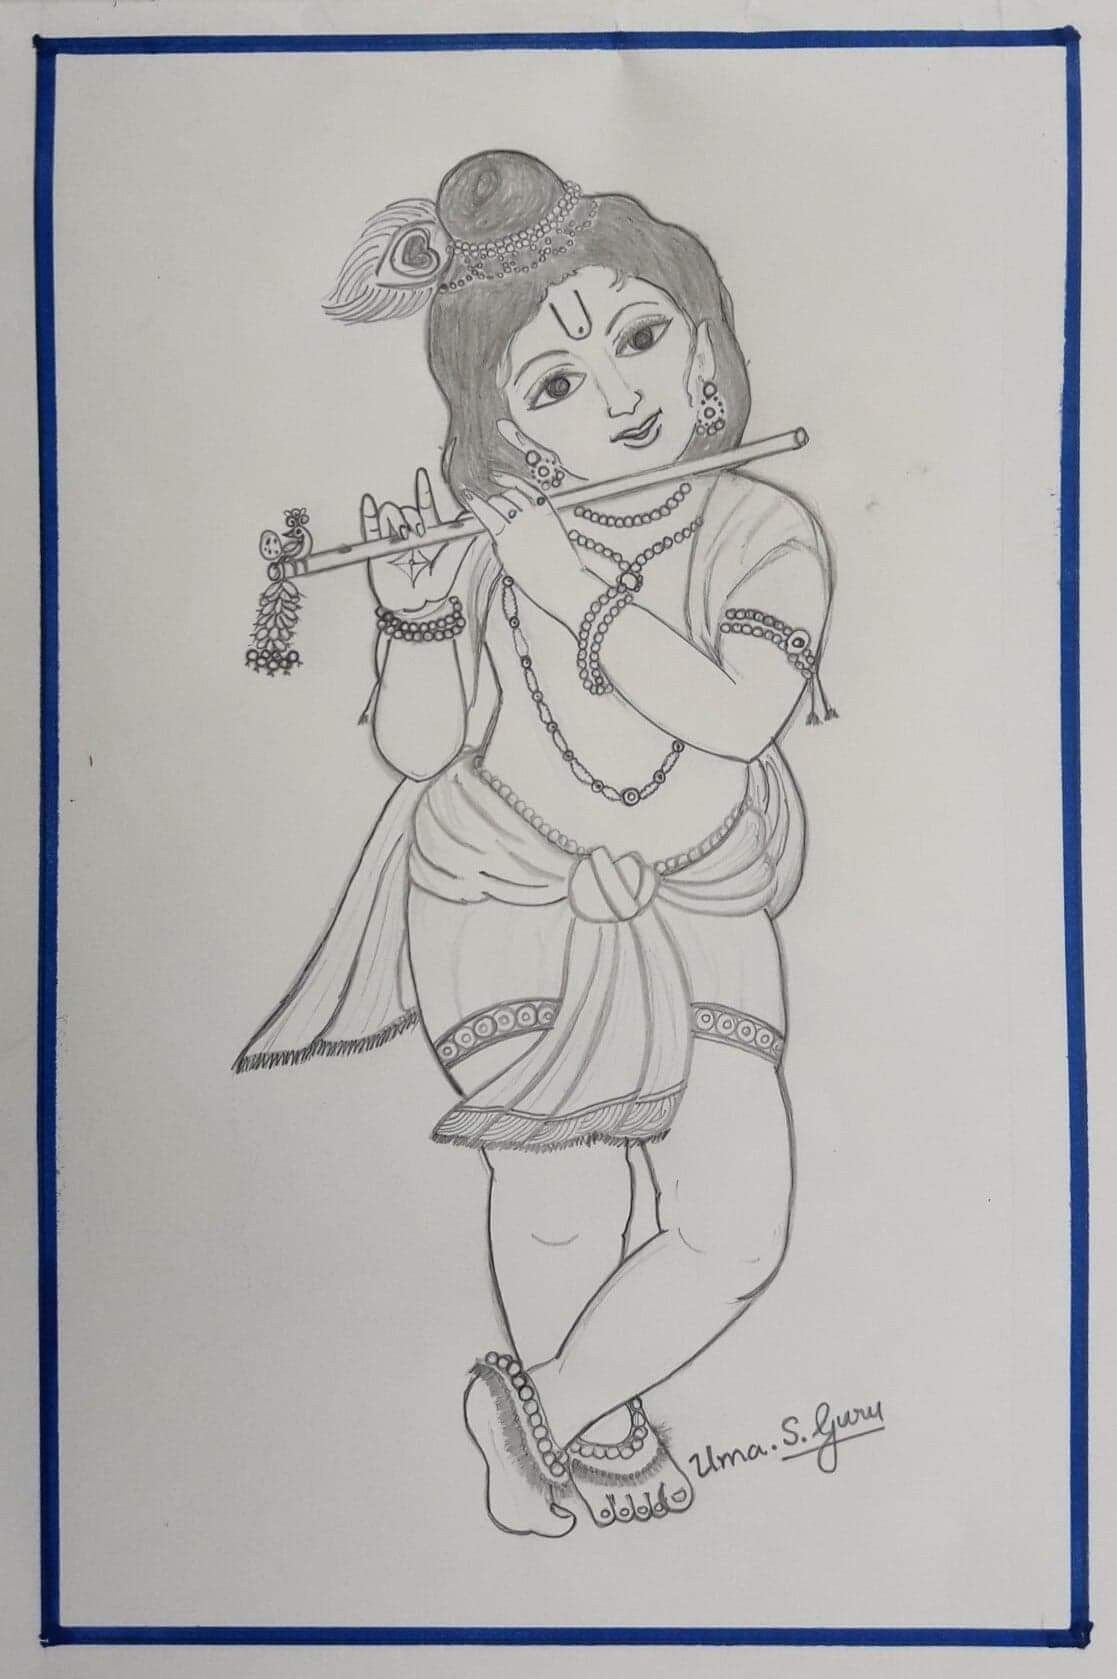 Krishna radha lord krishna shiva krishna drawing pencil sketching pencil art